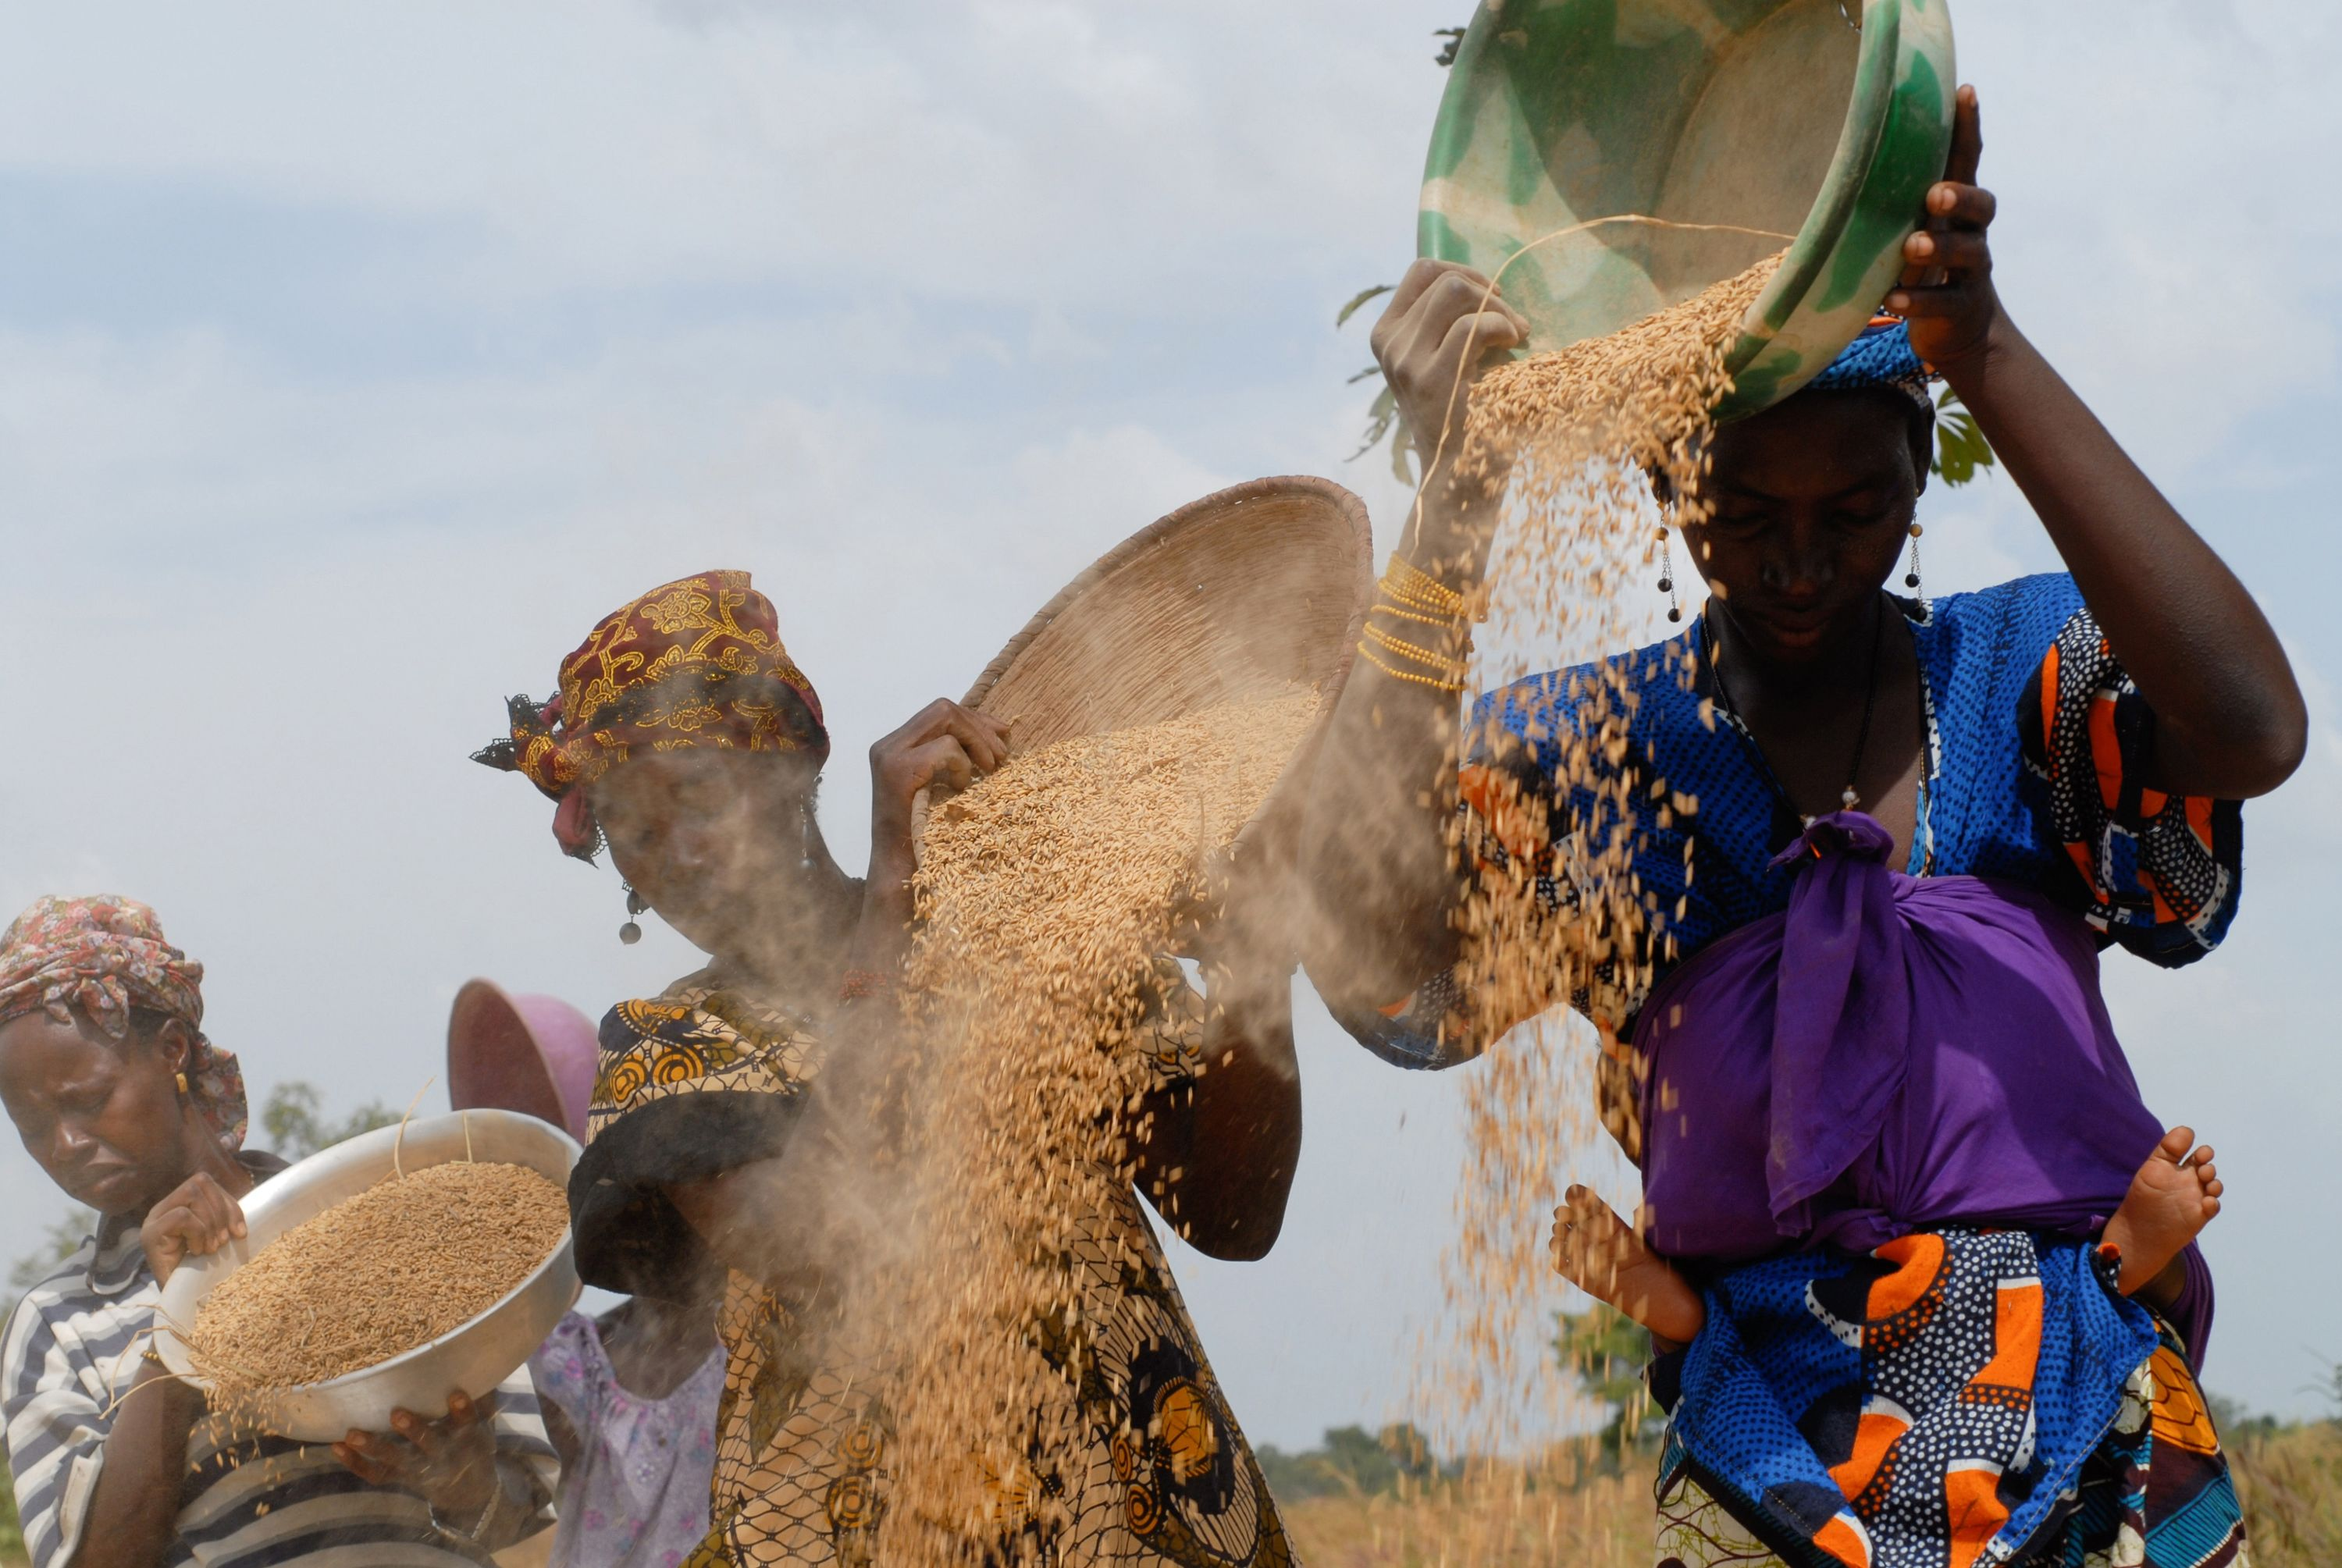 Women thresh rice and separate the chaff from the grain in the village of Banankoro Mali. Photo: Joerg Boethling, GIZ